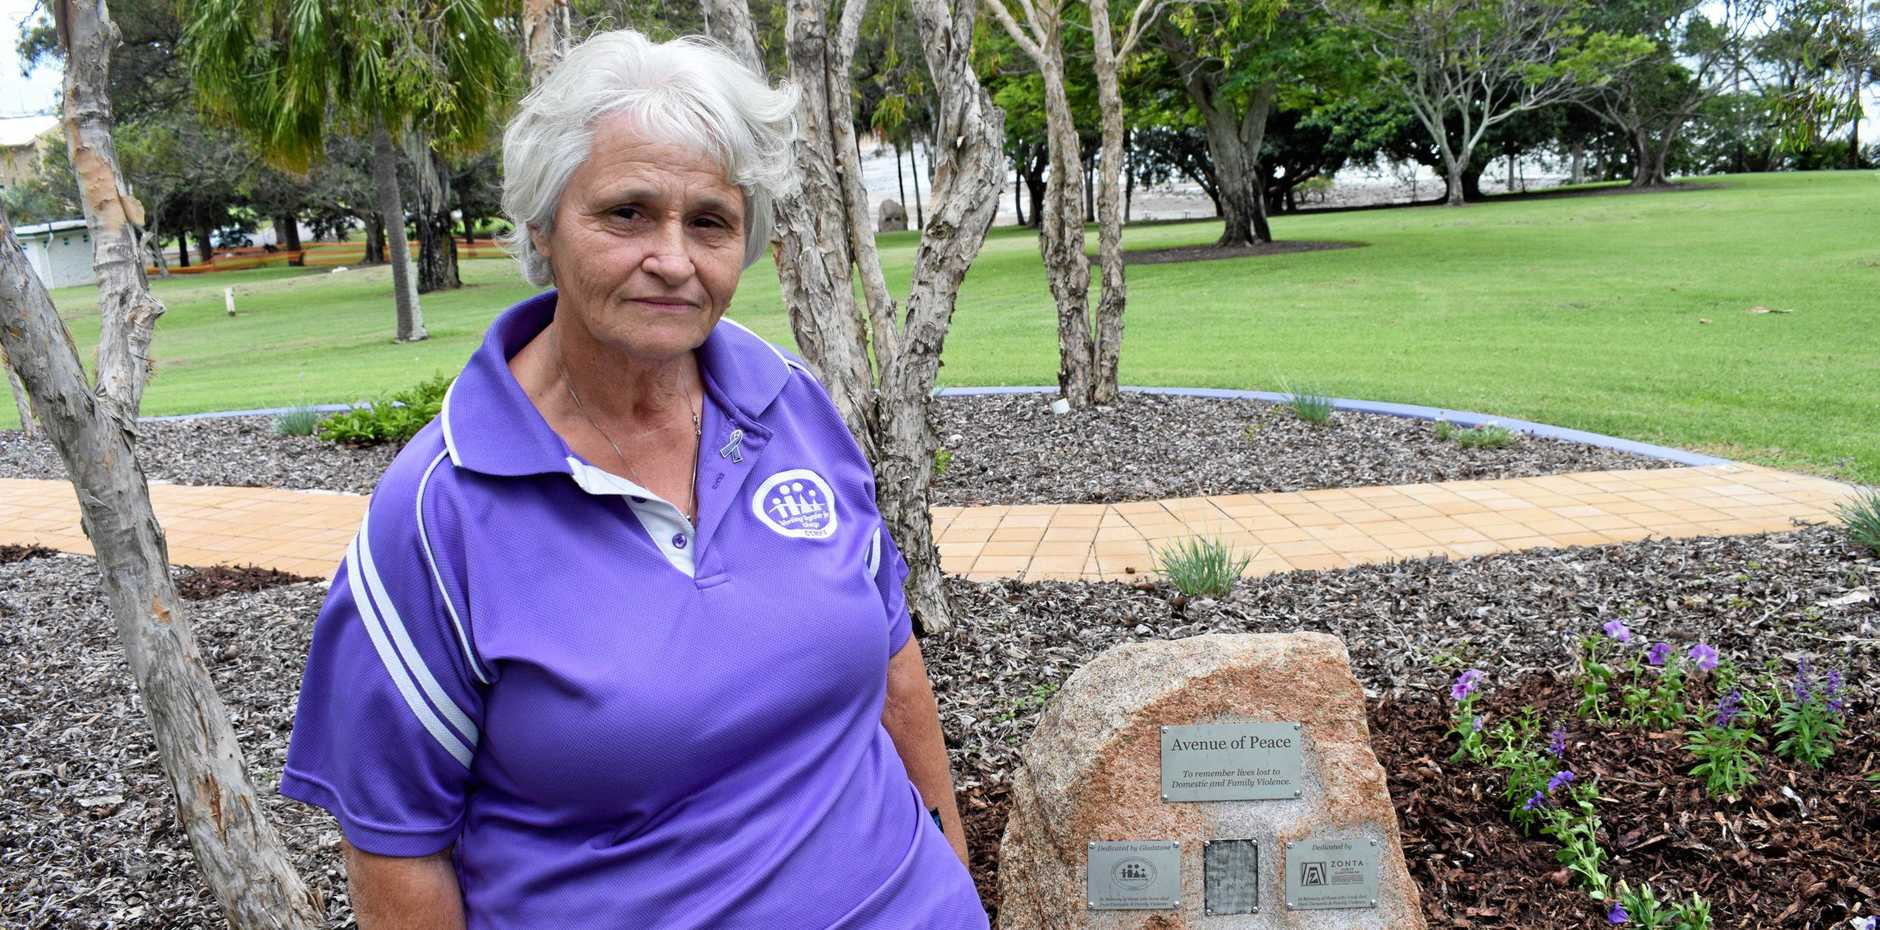 Linda Watson with the plaque in Friend Park at Barney Point which was unveiled today in honour of her daughter who lost her life to domestic violence.